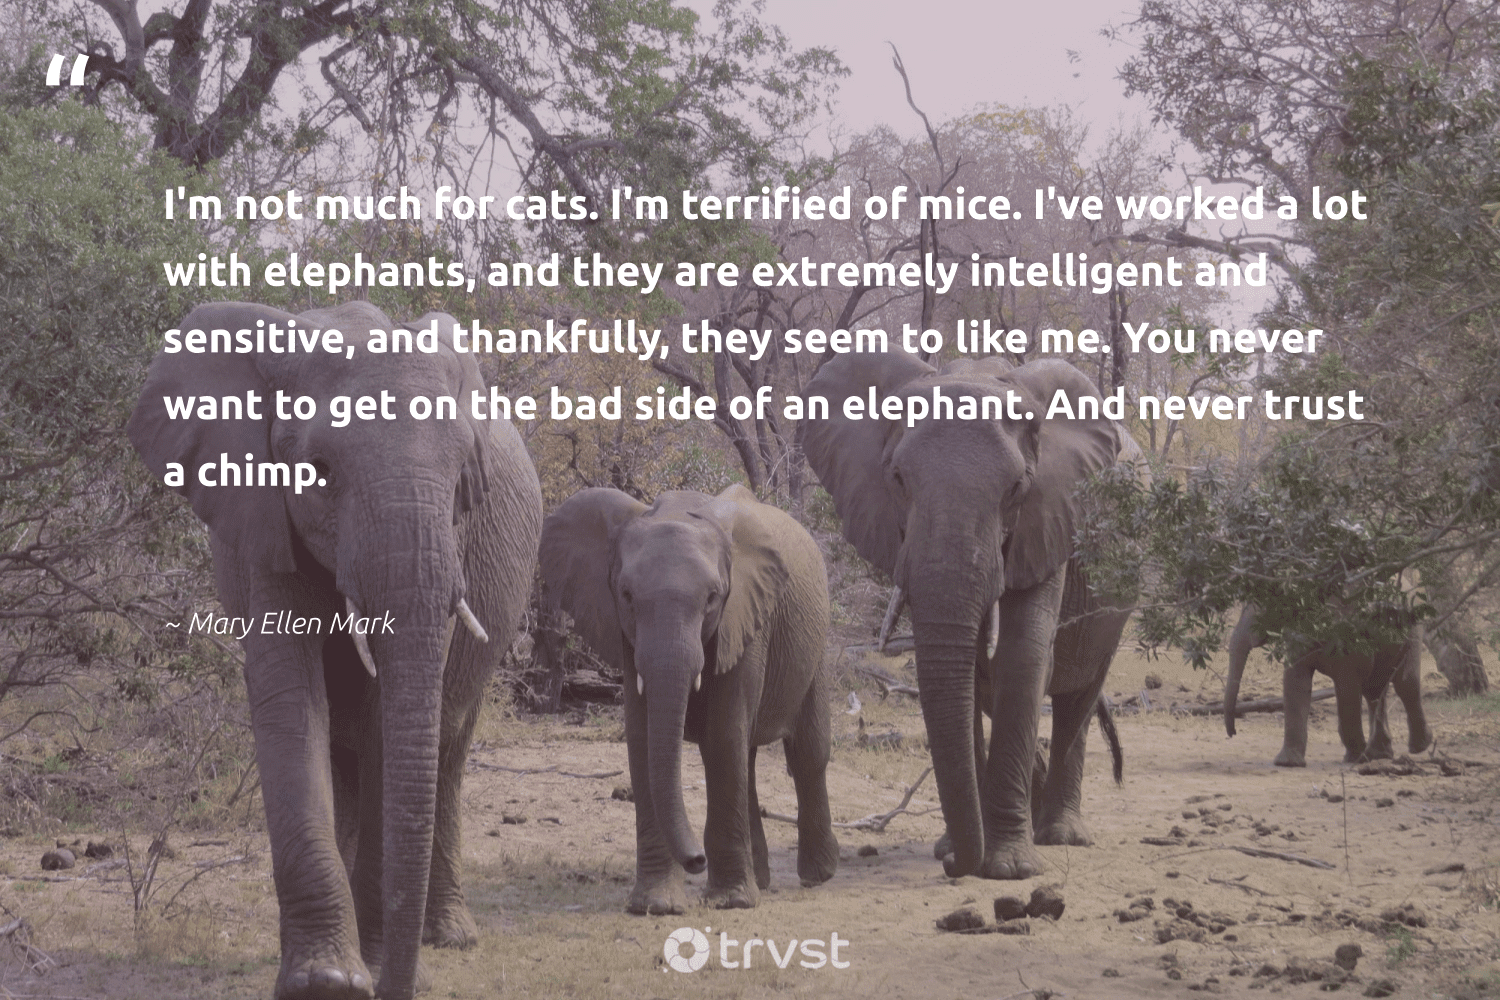 """""""I'm not much for cats. I'm terrified of mice. I've worked a lot with elephants, and they are extremely intelligent and sensitive, and thankfully, they seem to like me. You never want to get on the bad side of an elephant. And never trust a chimp.""""  - Mary Ellen Mark #trvst #quotes #elephants #elephant #dosomething #elephantlover #dotherightthing #animals #takeaction #wildanimals #dogood #wildgeography"""